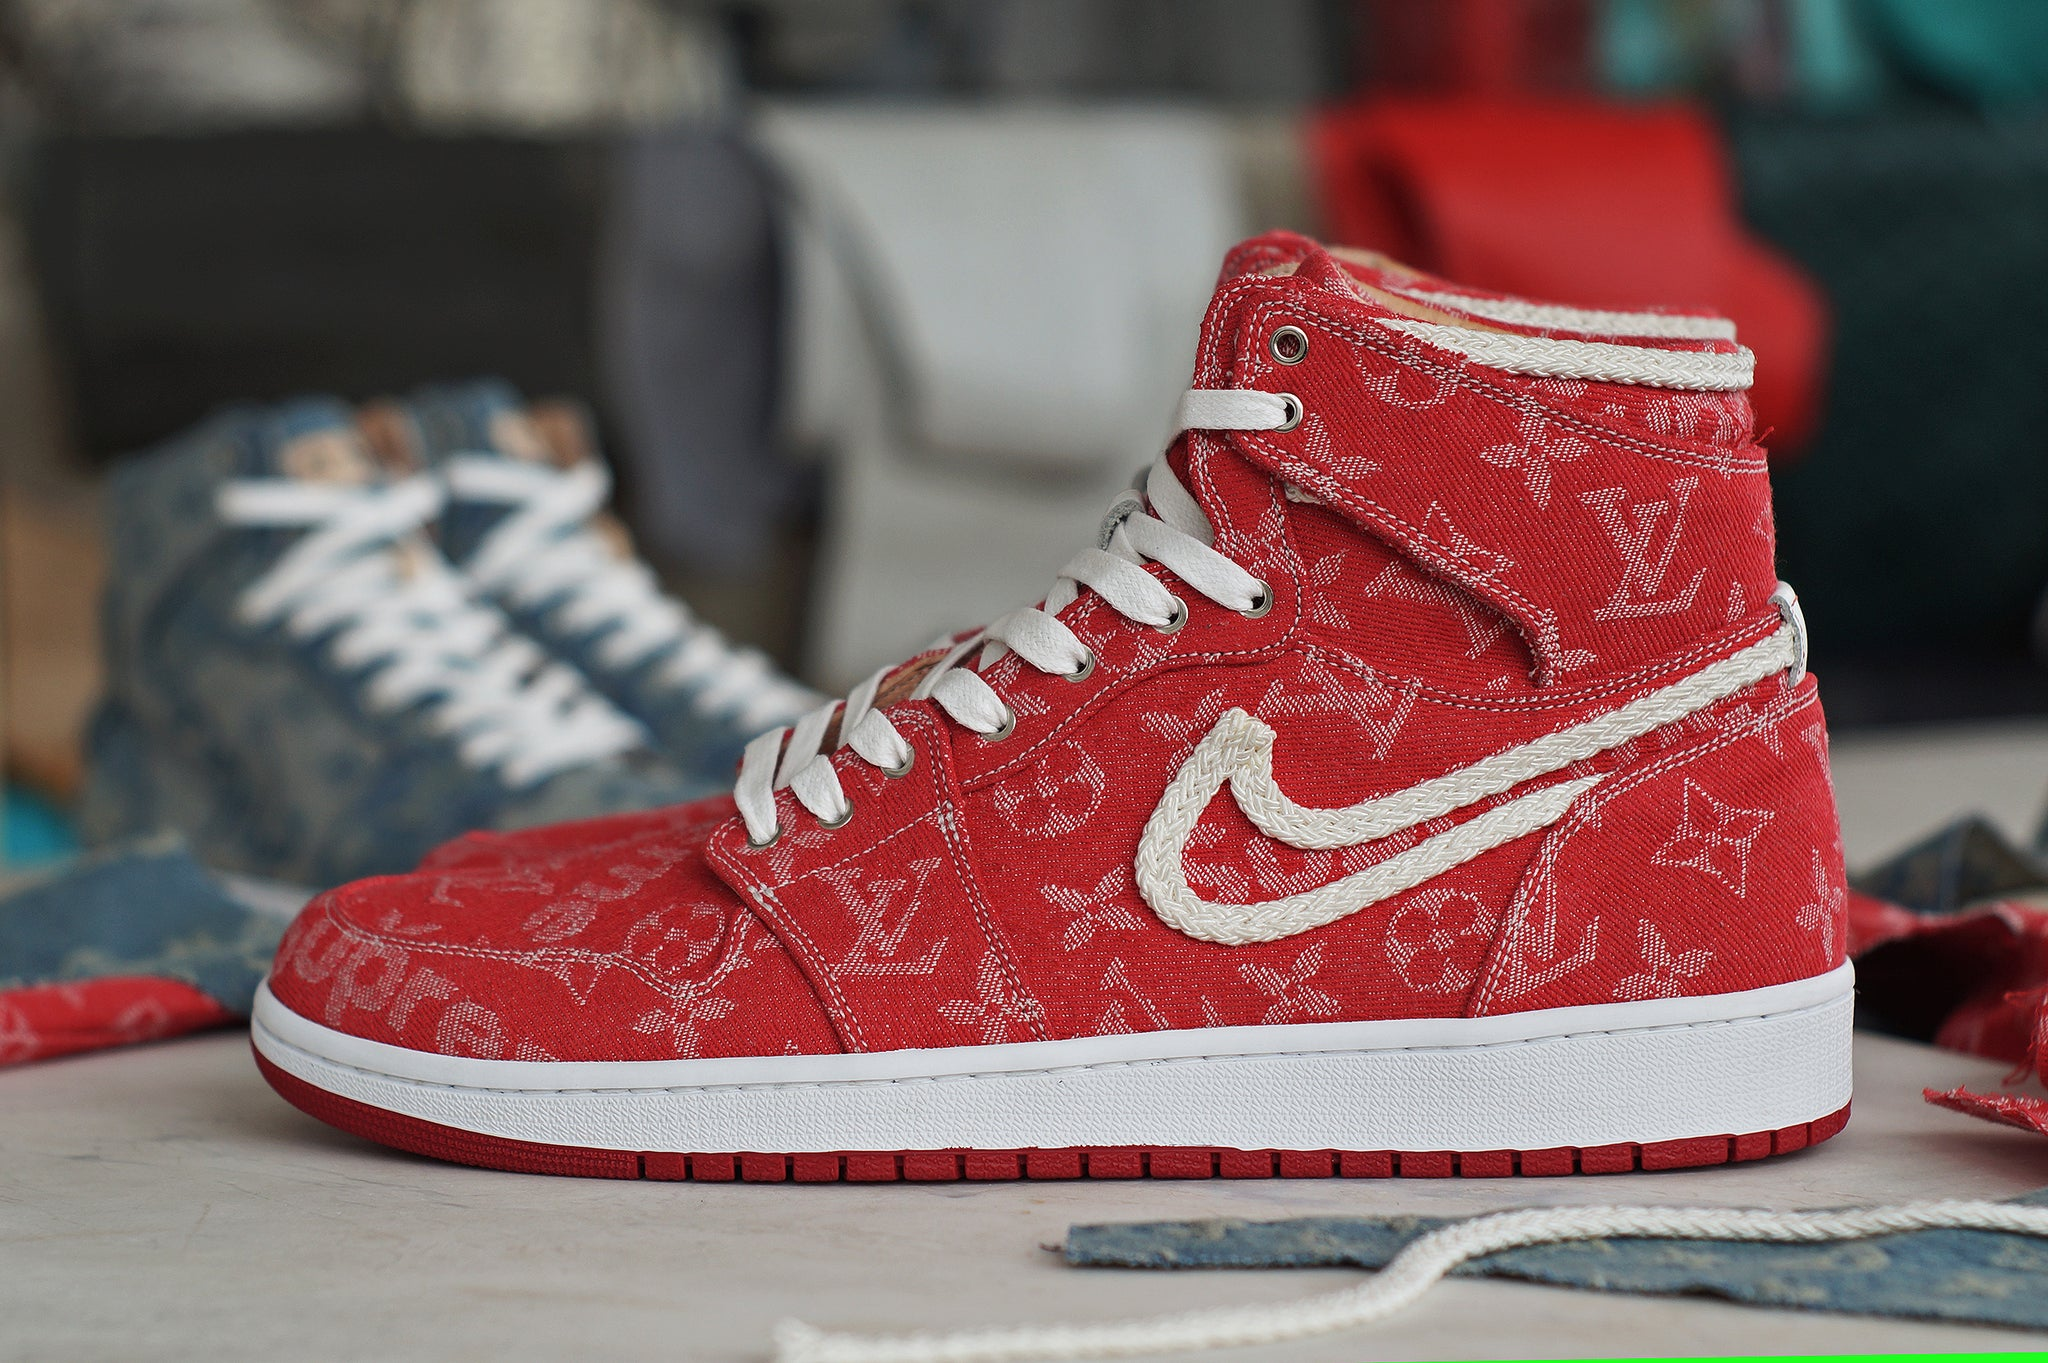 Red Supreme x LV Jordan 1